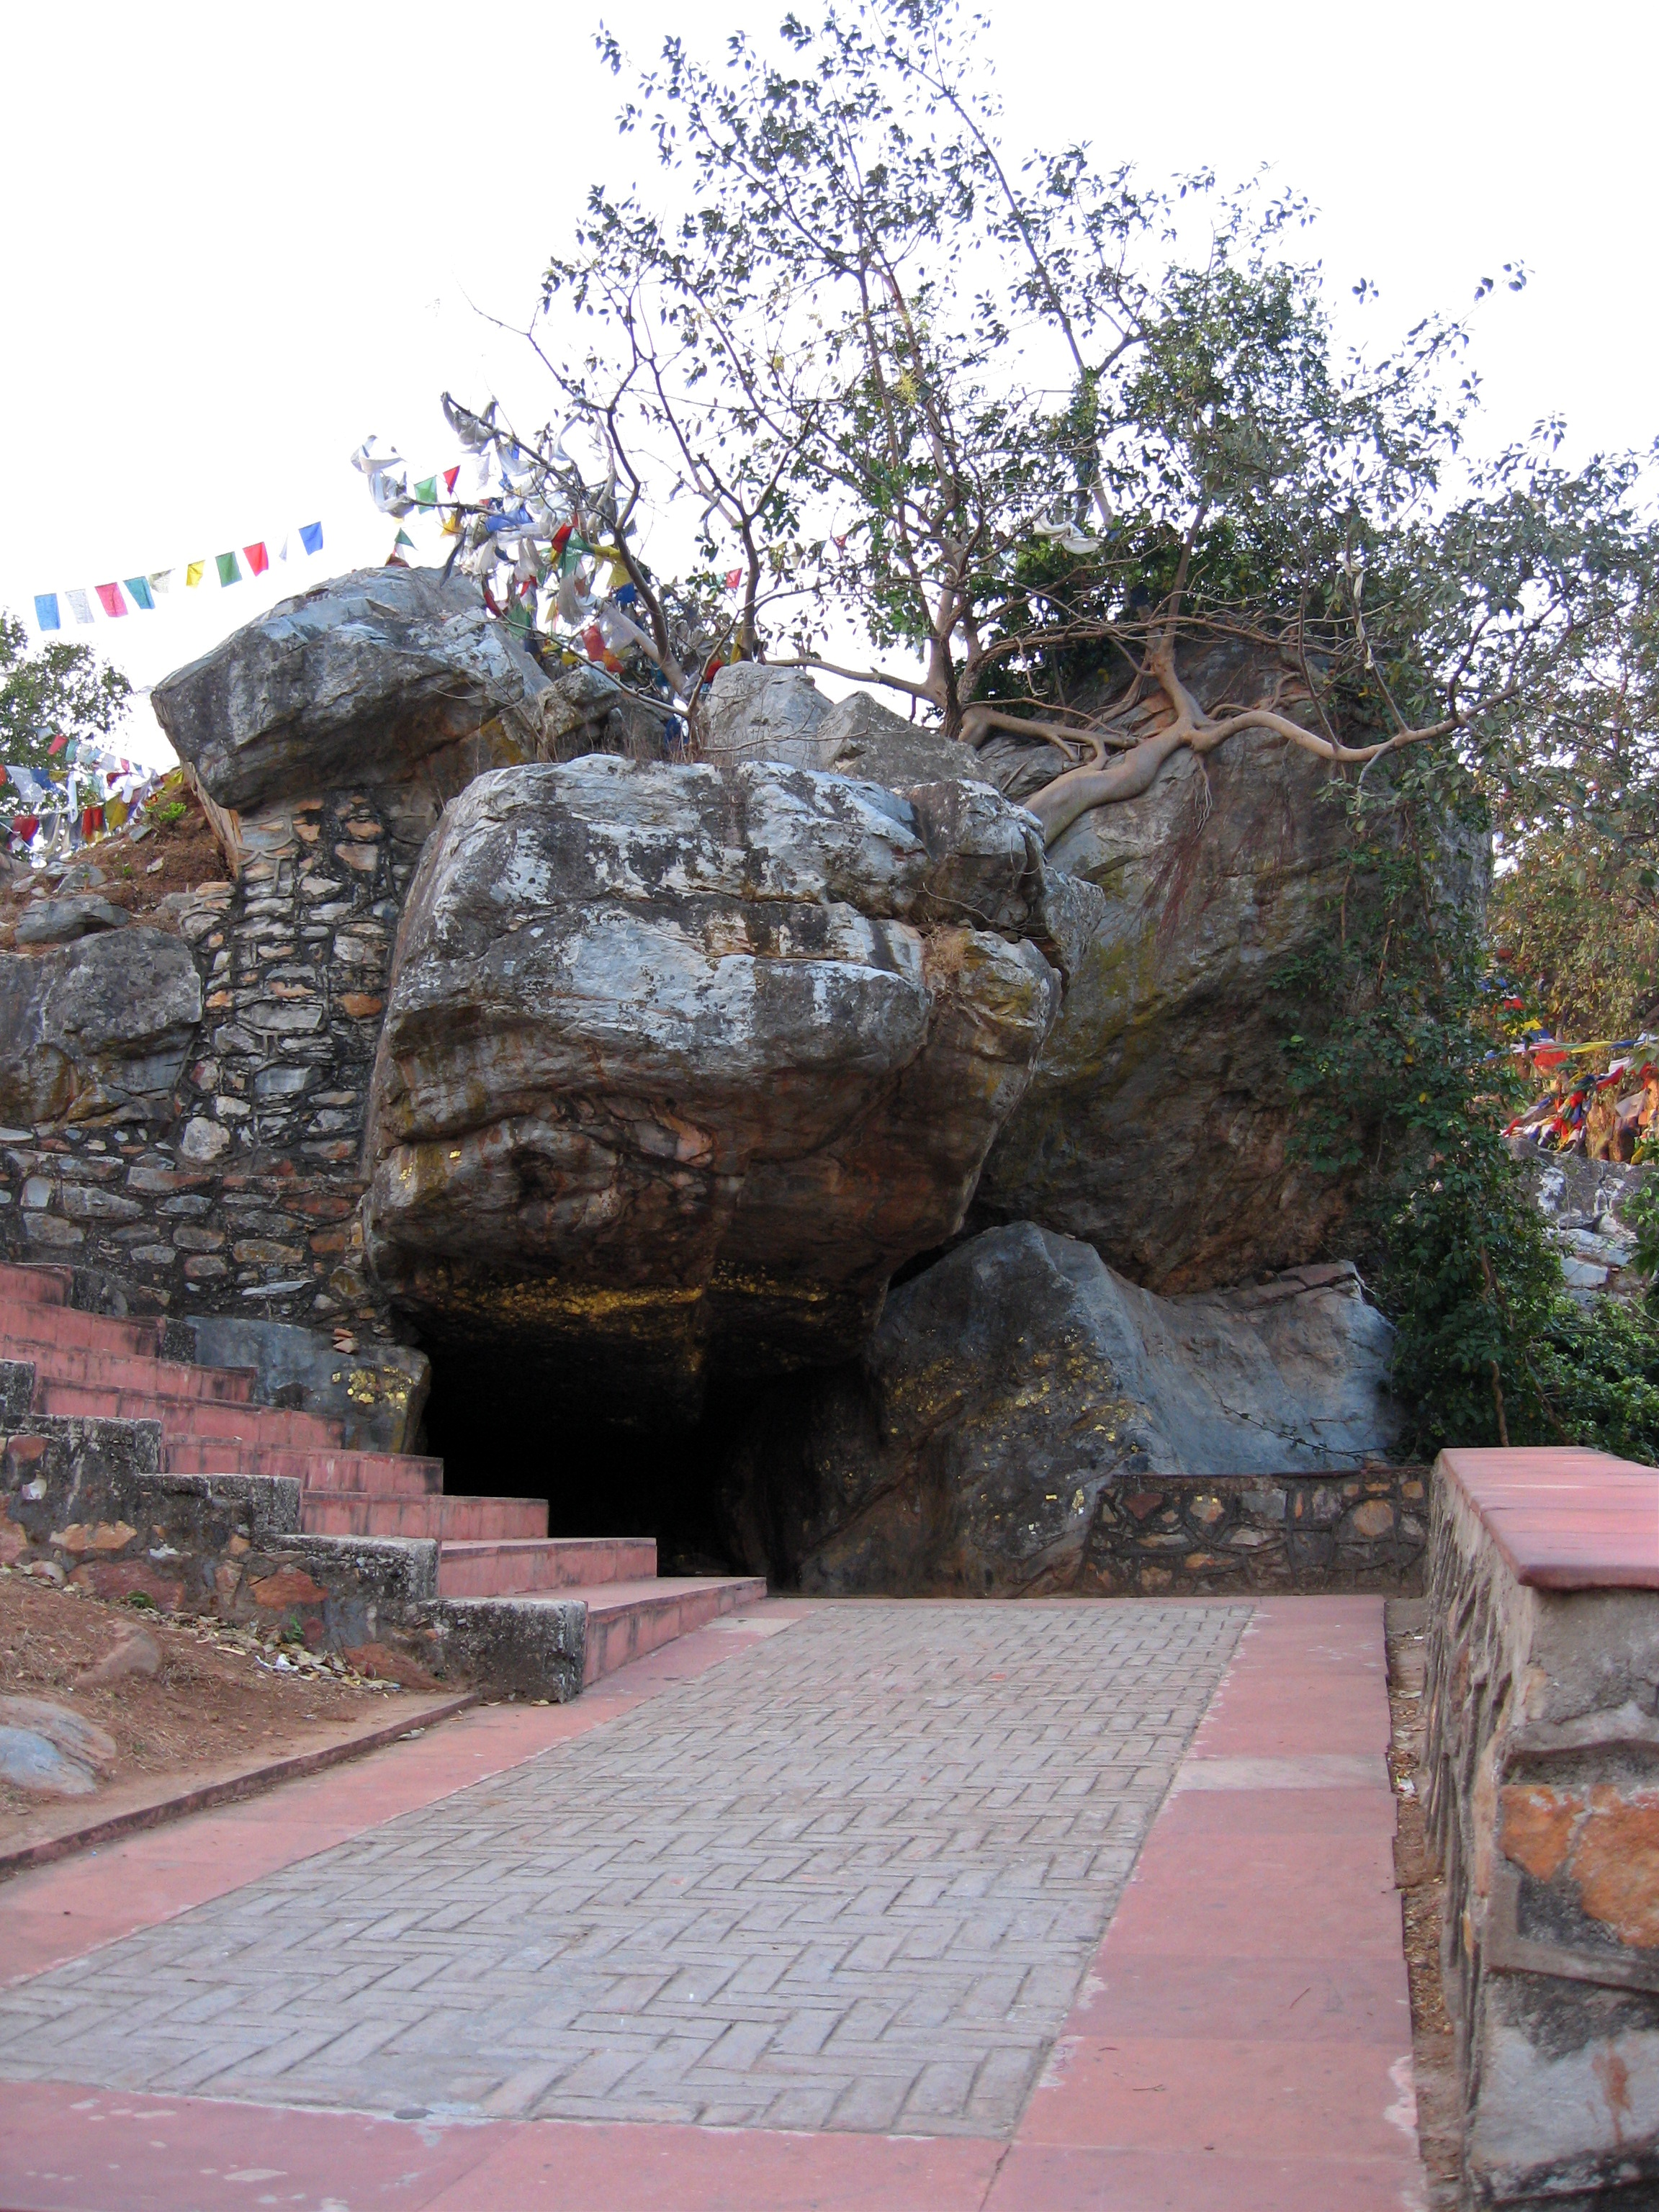 Sukarakhata (Boar's Grotto) on Gridhakuta (Vulture Peak) near Rajgir, Bihar, India